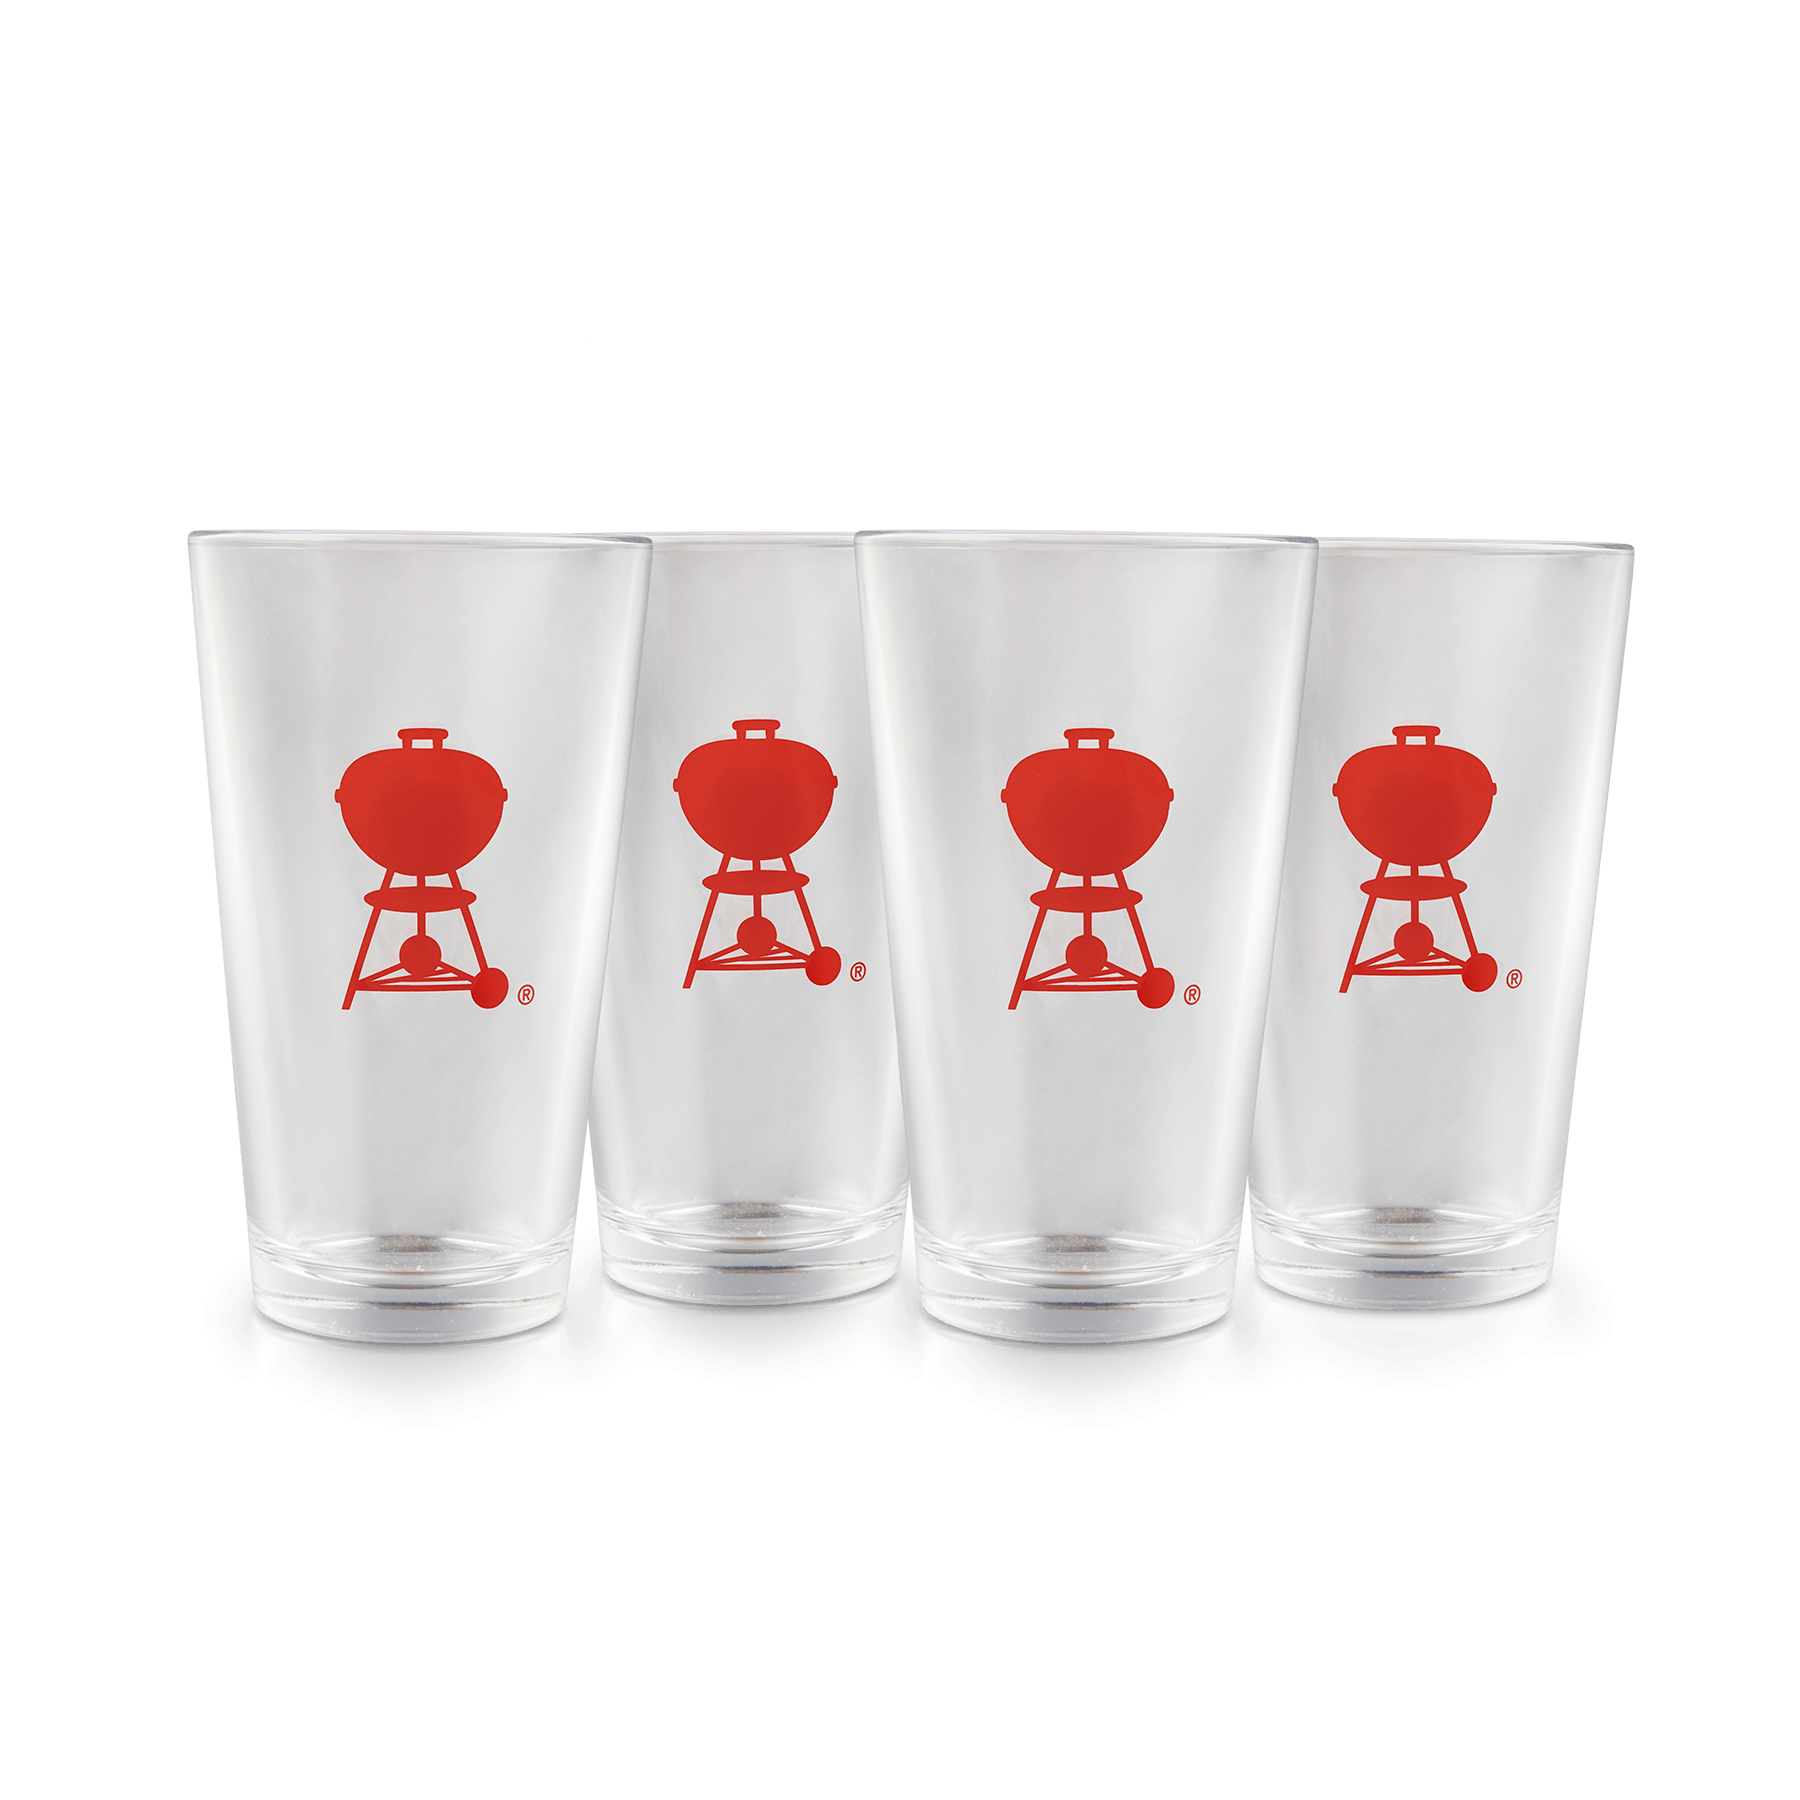 Pint Glasses – 4 Piece Set